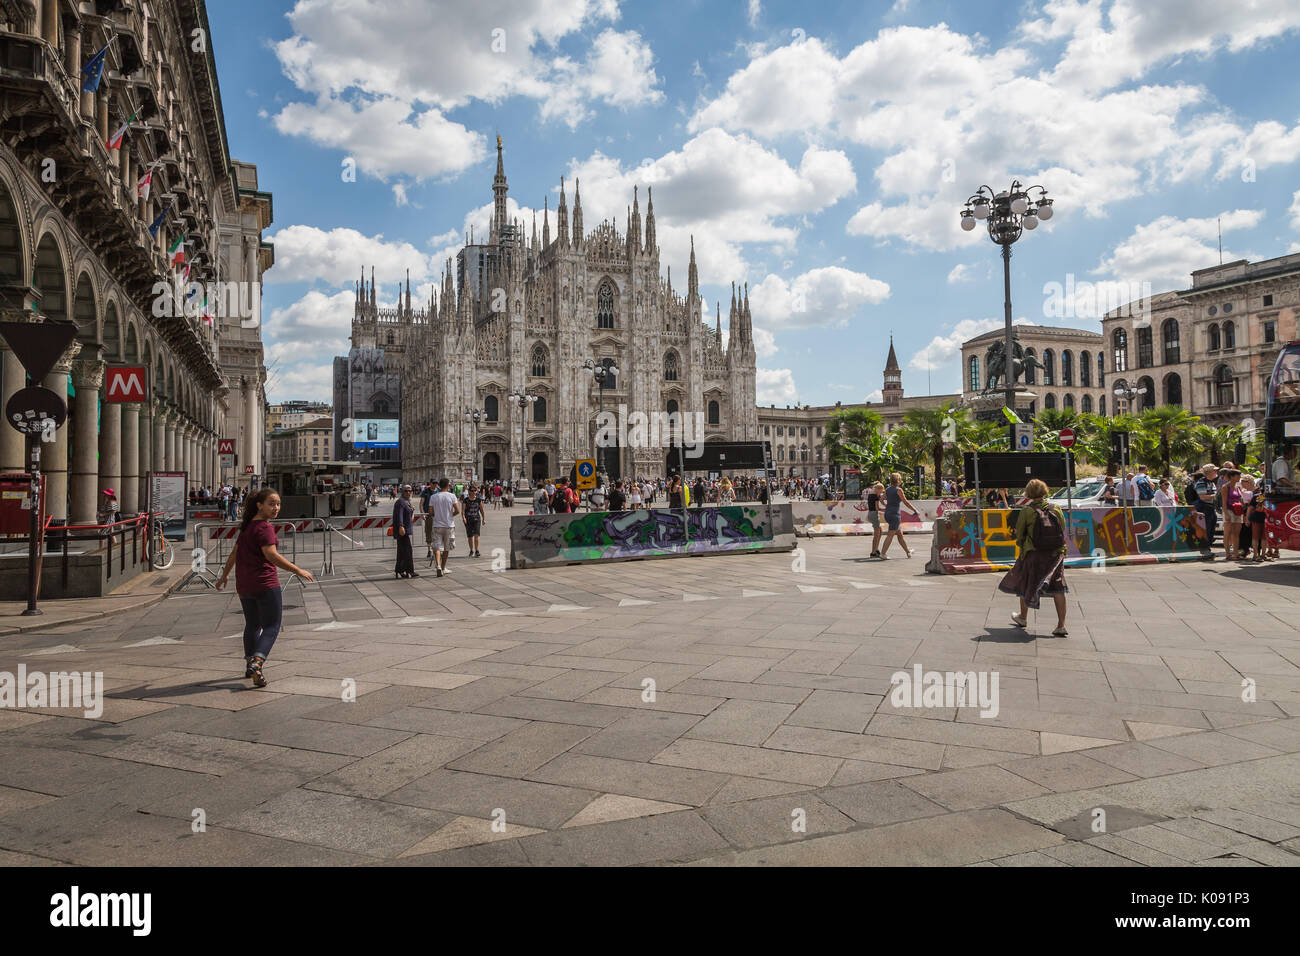 Jersey barriers in Piazza Duomo, Milan, Italy - Stock Image